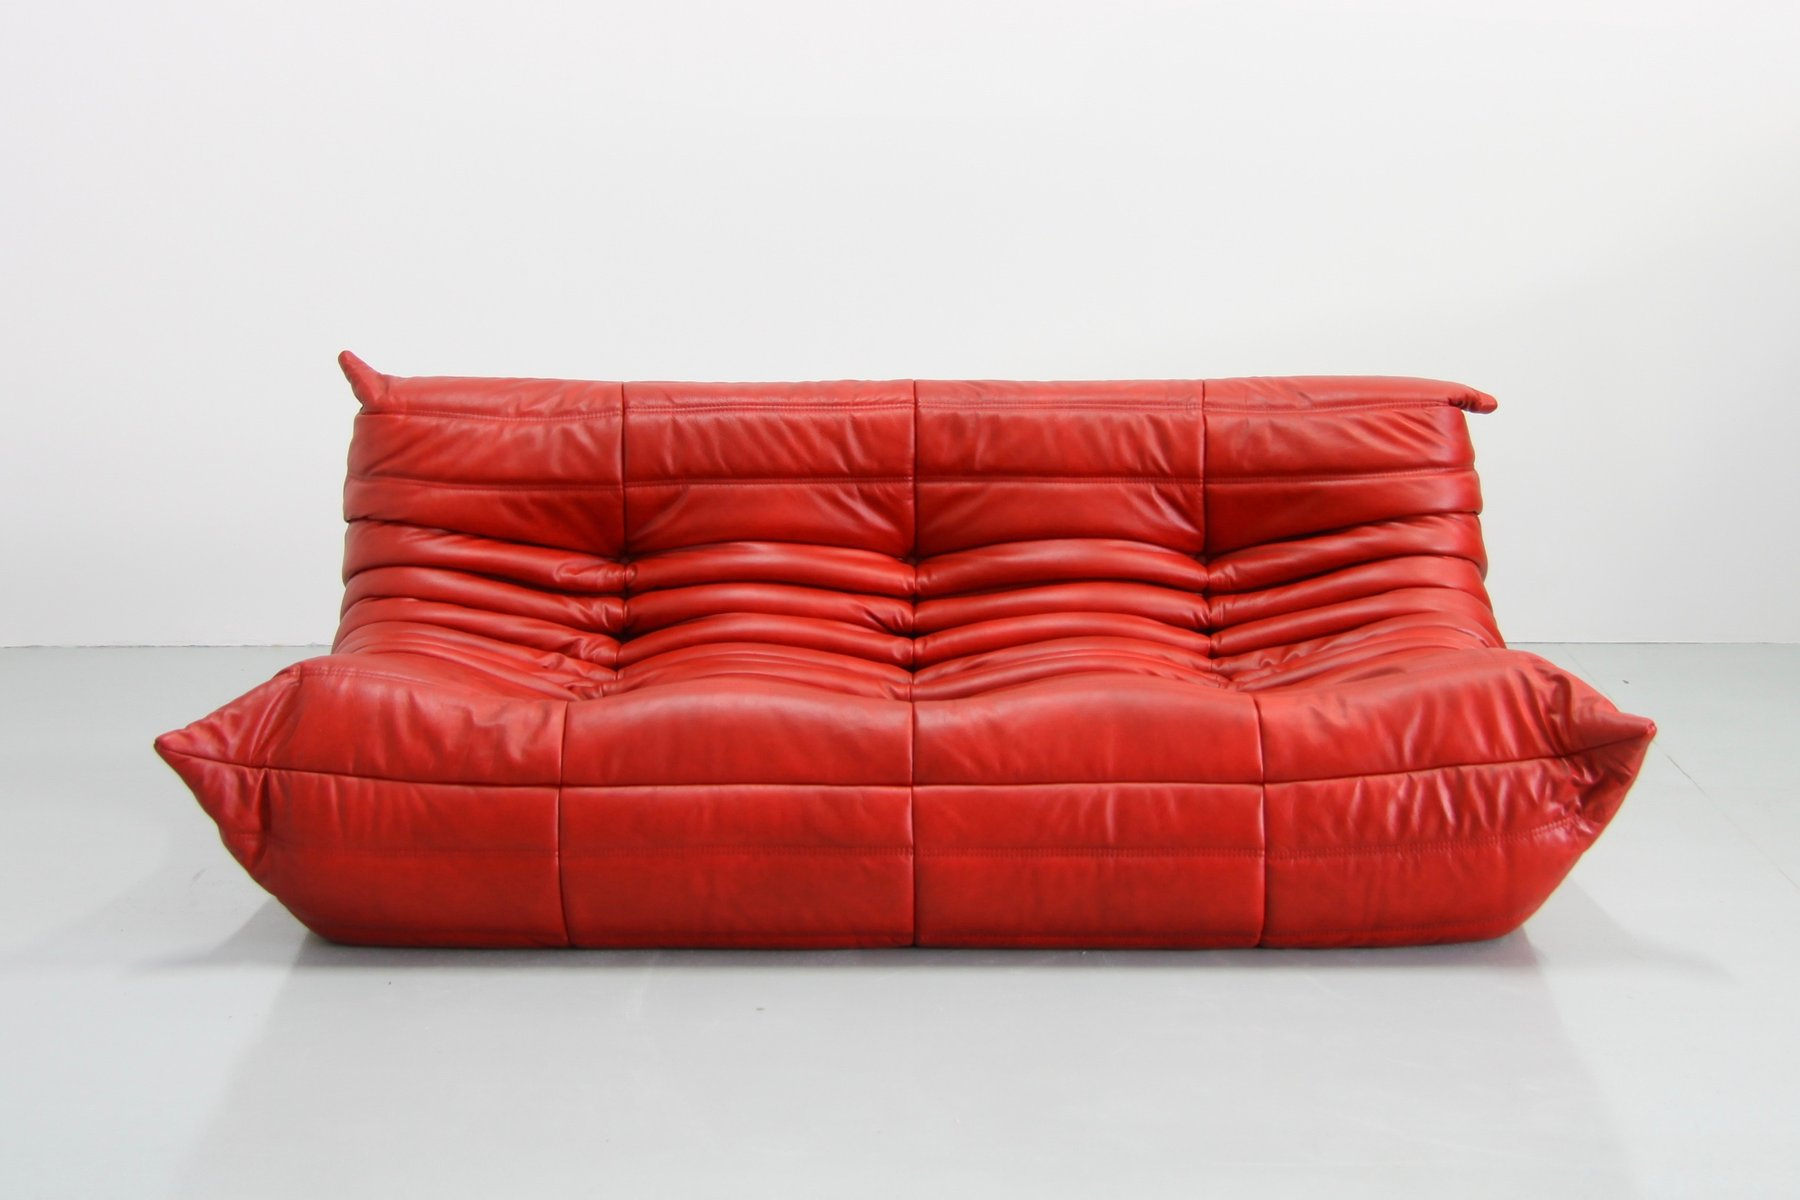 rotes vintage togo ledersofa von michel ducaroy f r ligne roset bei pamono kaufen. Black Bedroom Furniture Sets. Home Design Ideas